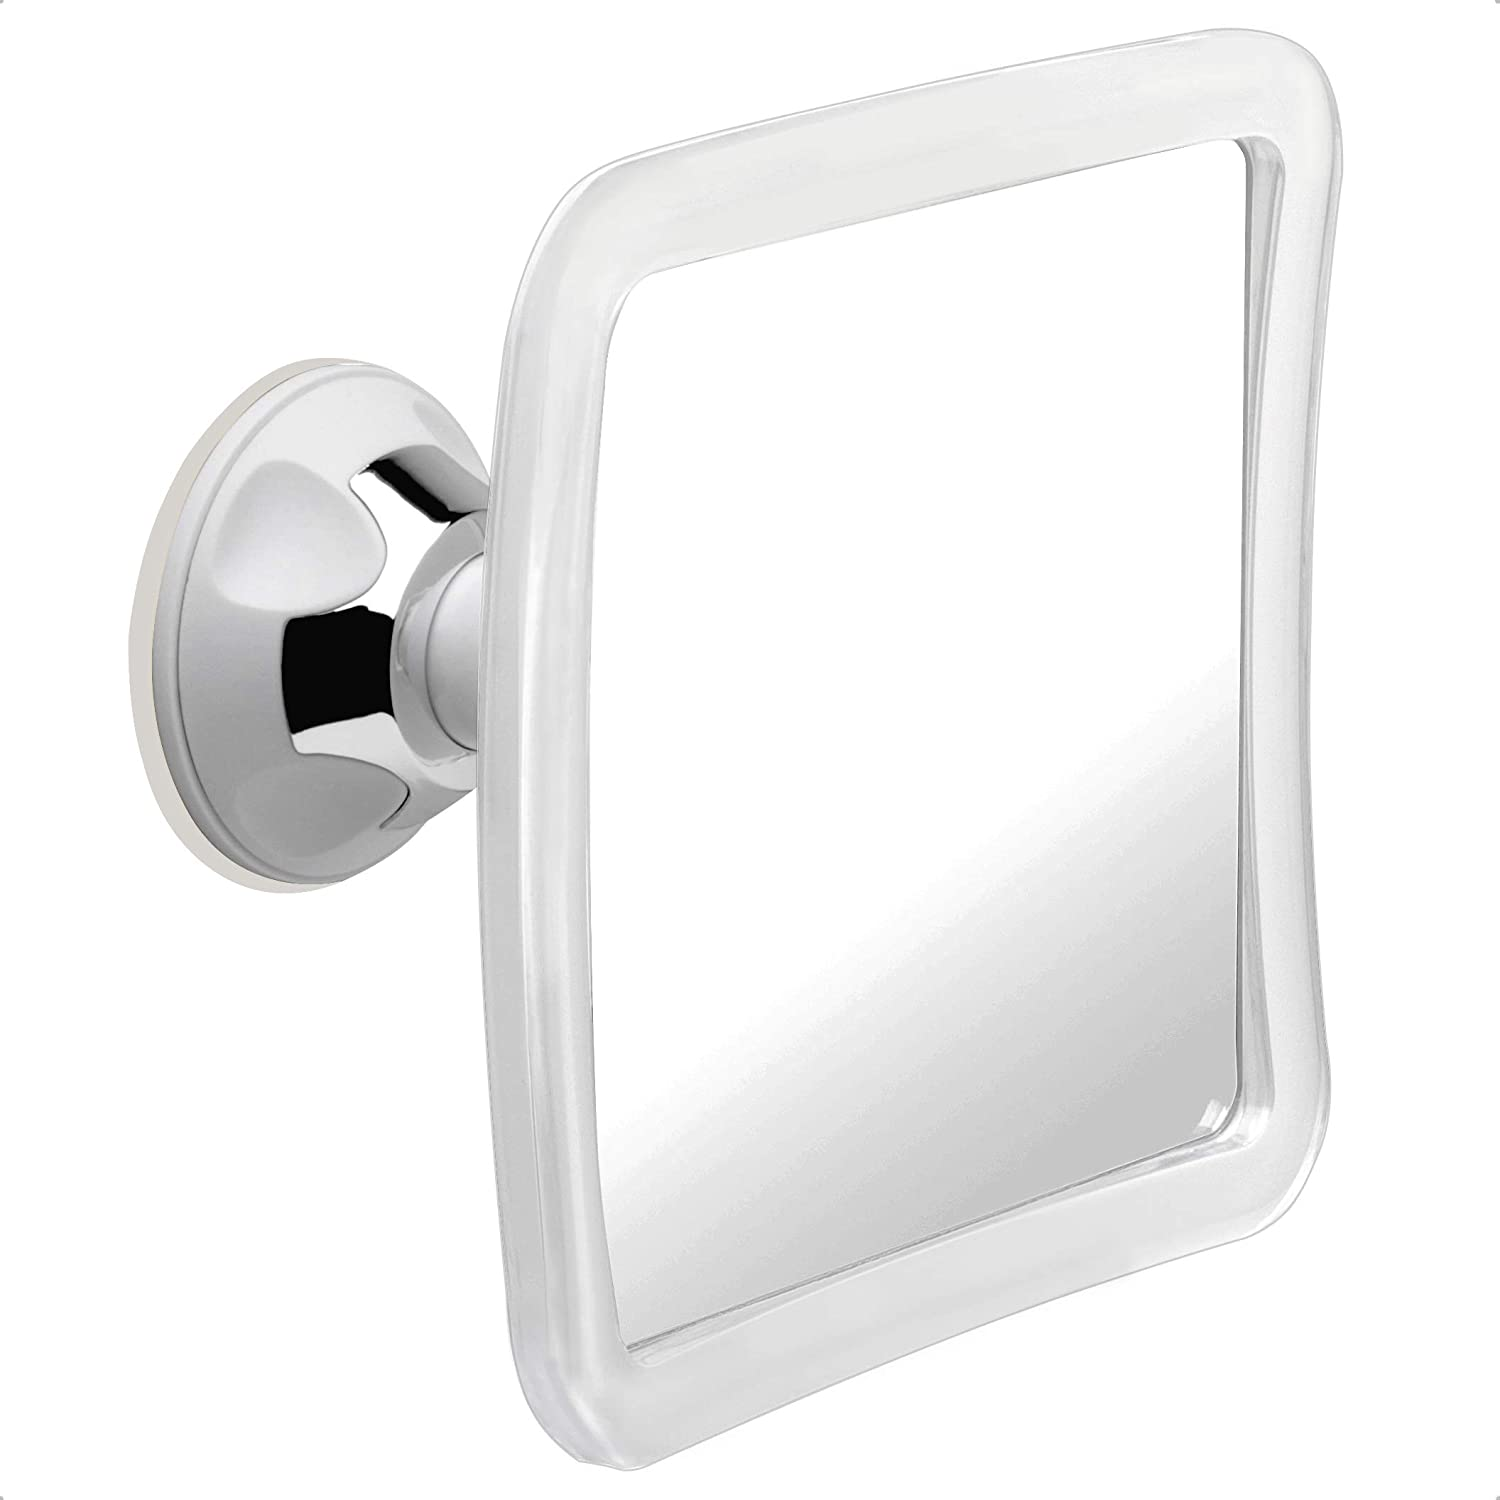 Mirrorvana Fogless Shower Mirror For Shaving With Upgraded Suction Anti Fog Shatterproof Surface And 360 Swivel 16cm X 16cm Amazon Co Uk Kitchen Home